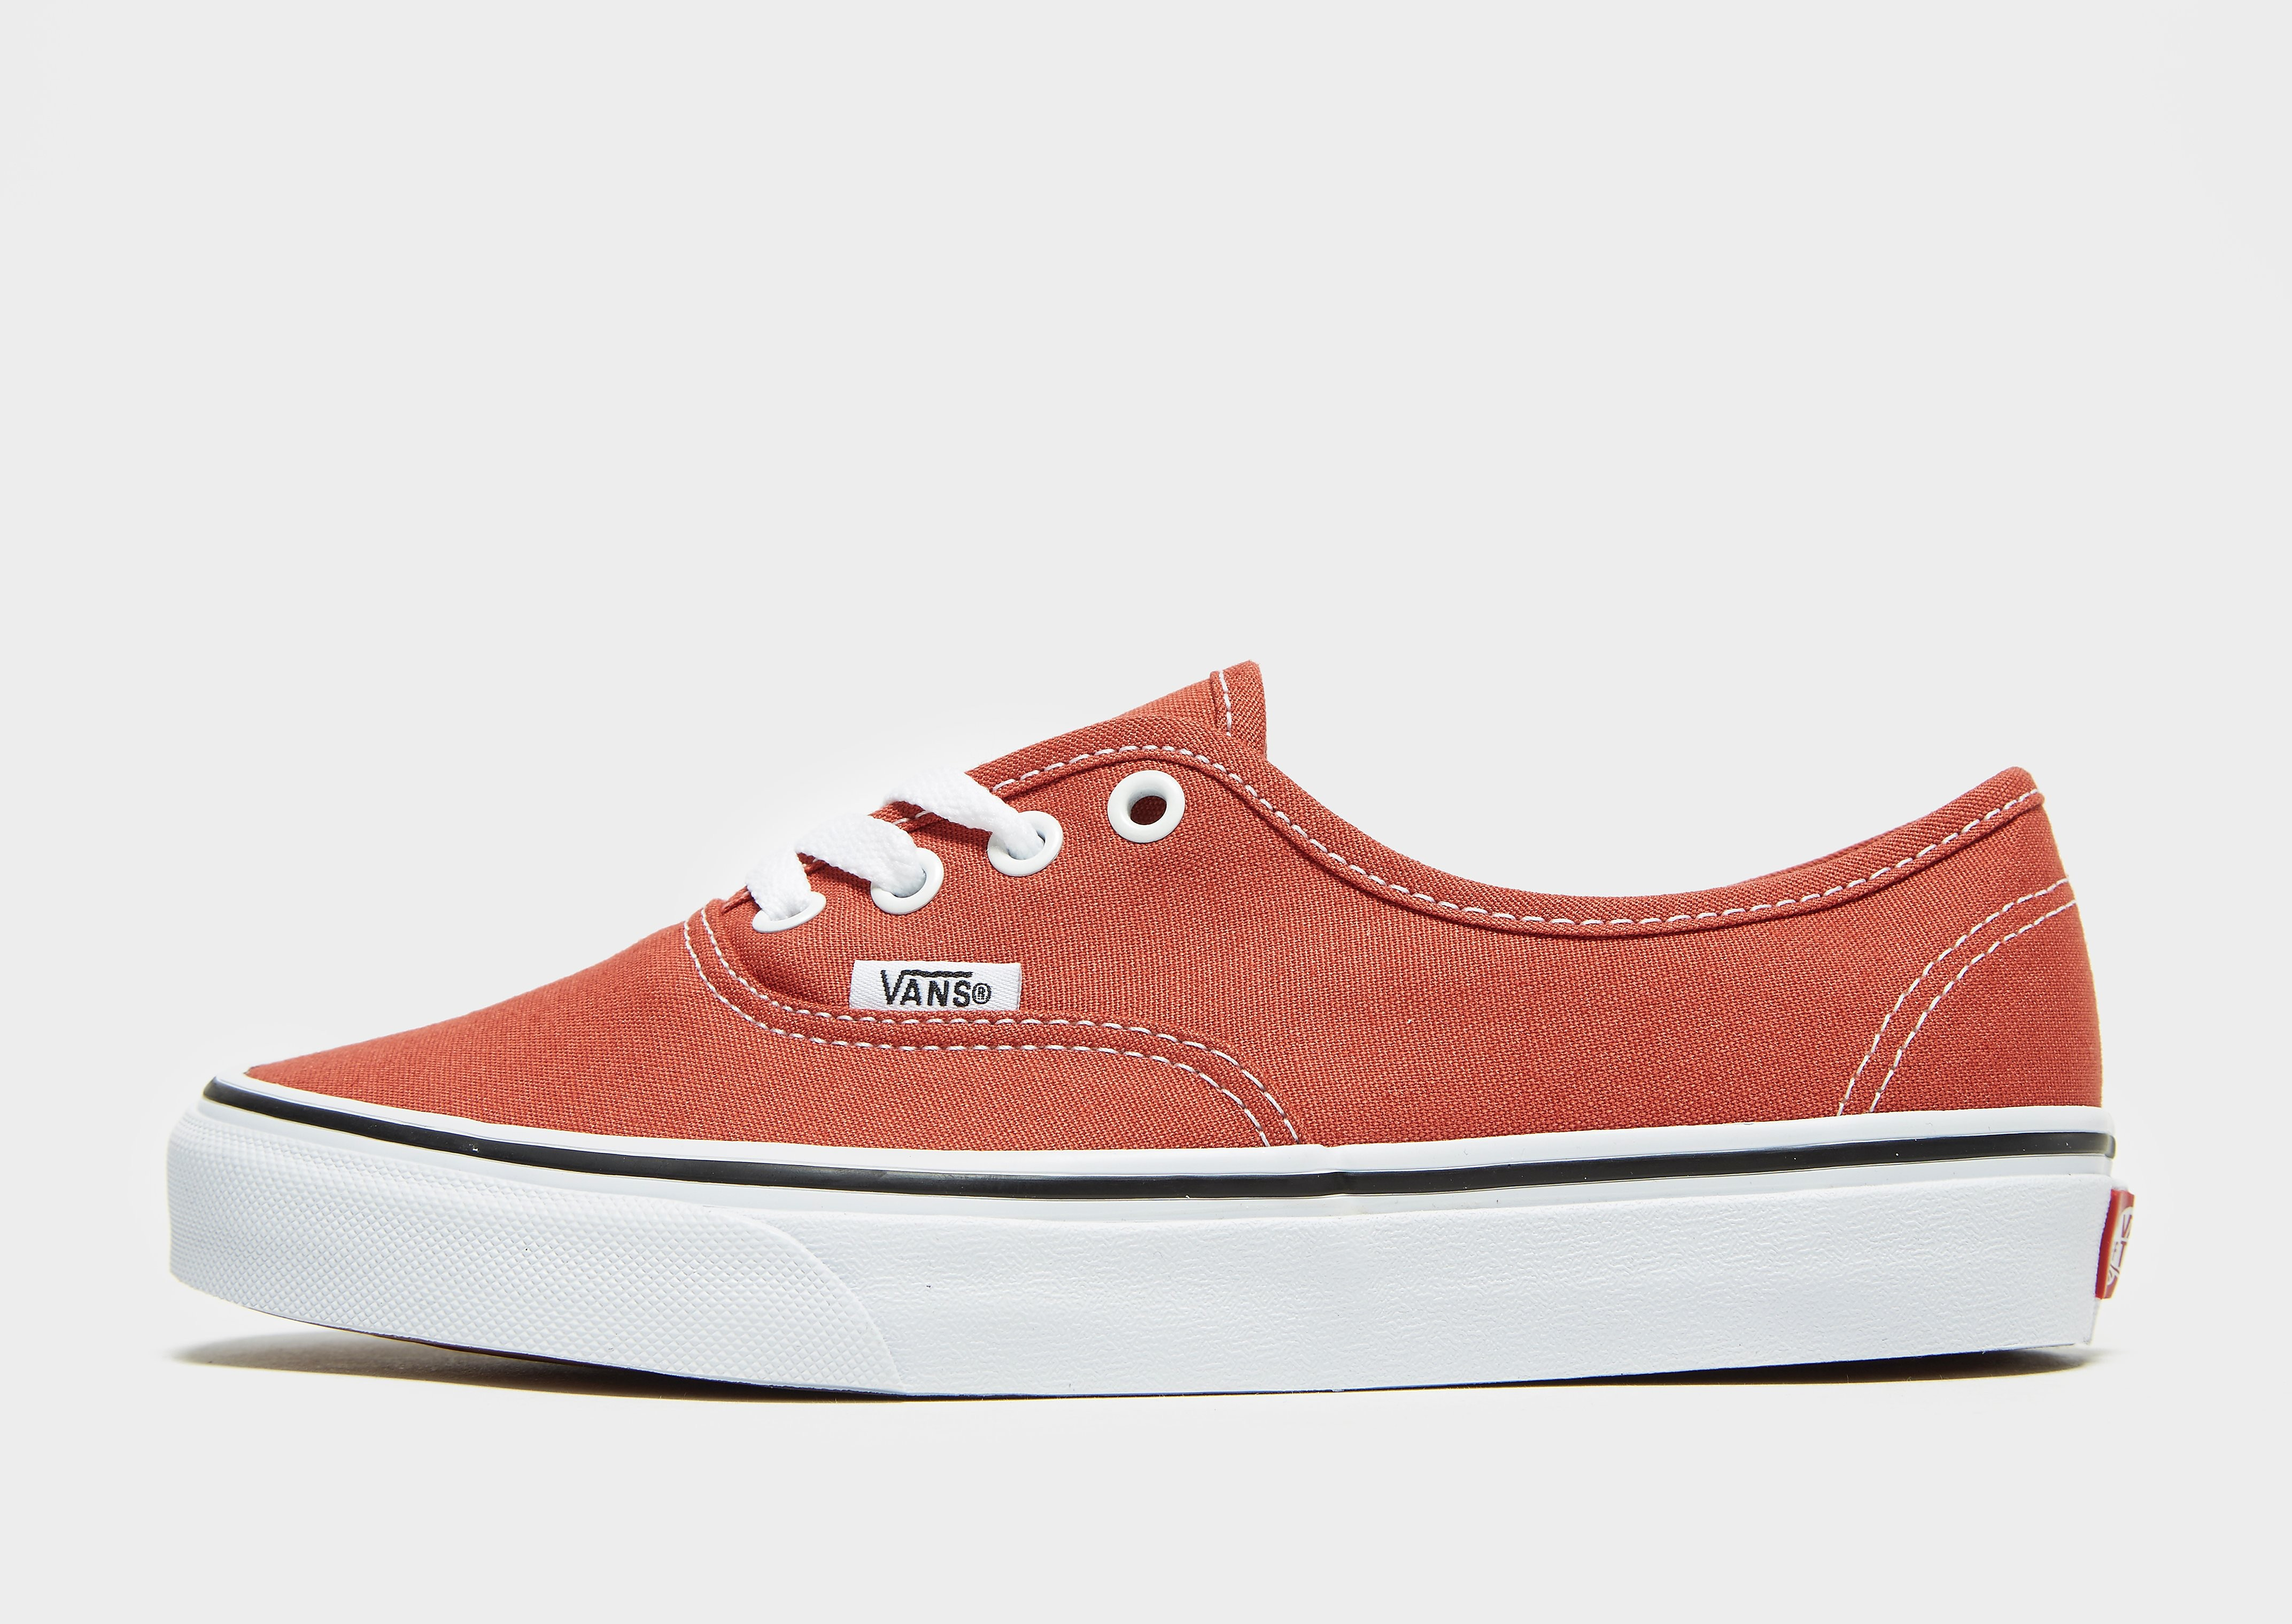 Vans Authentic Dames - Rood - Dames